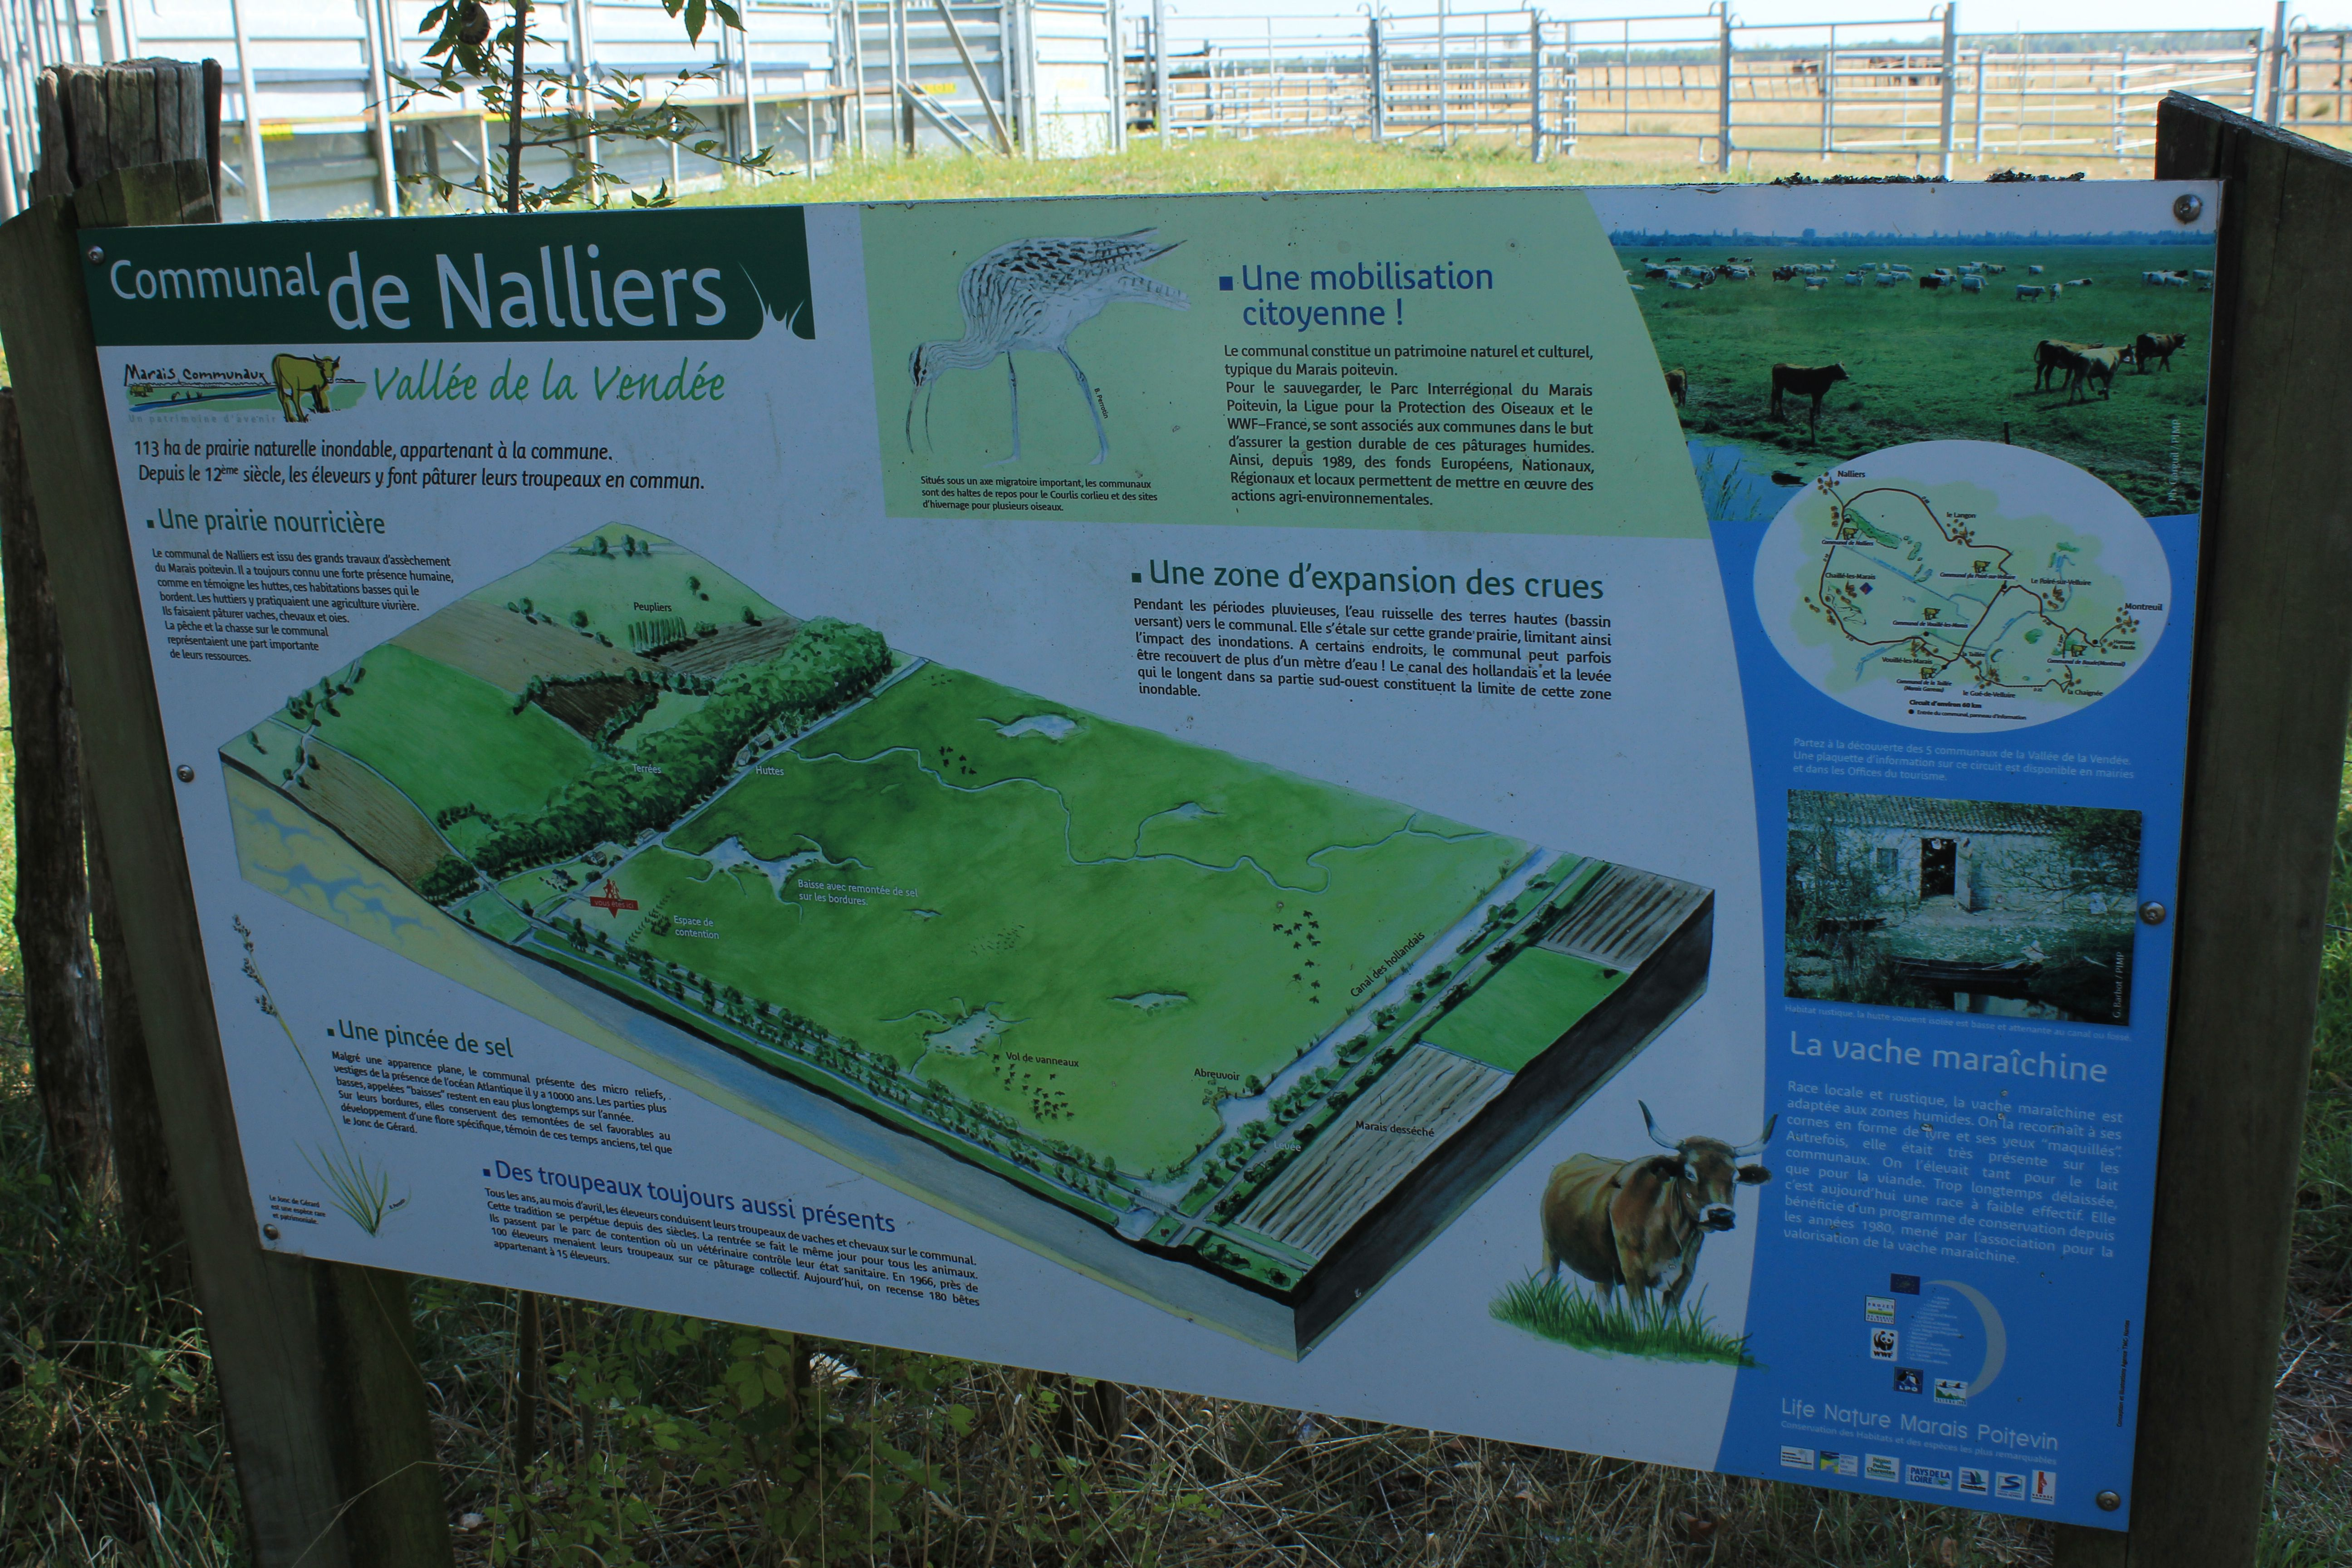 Information board about the project in Nalliers.